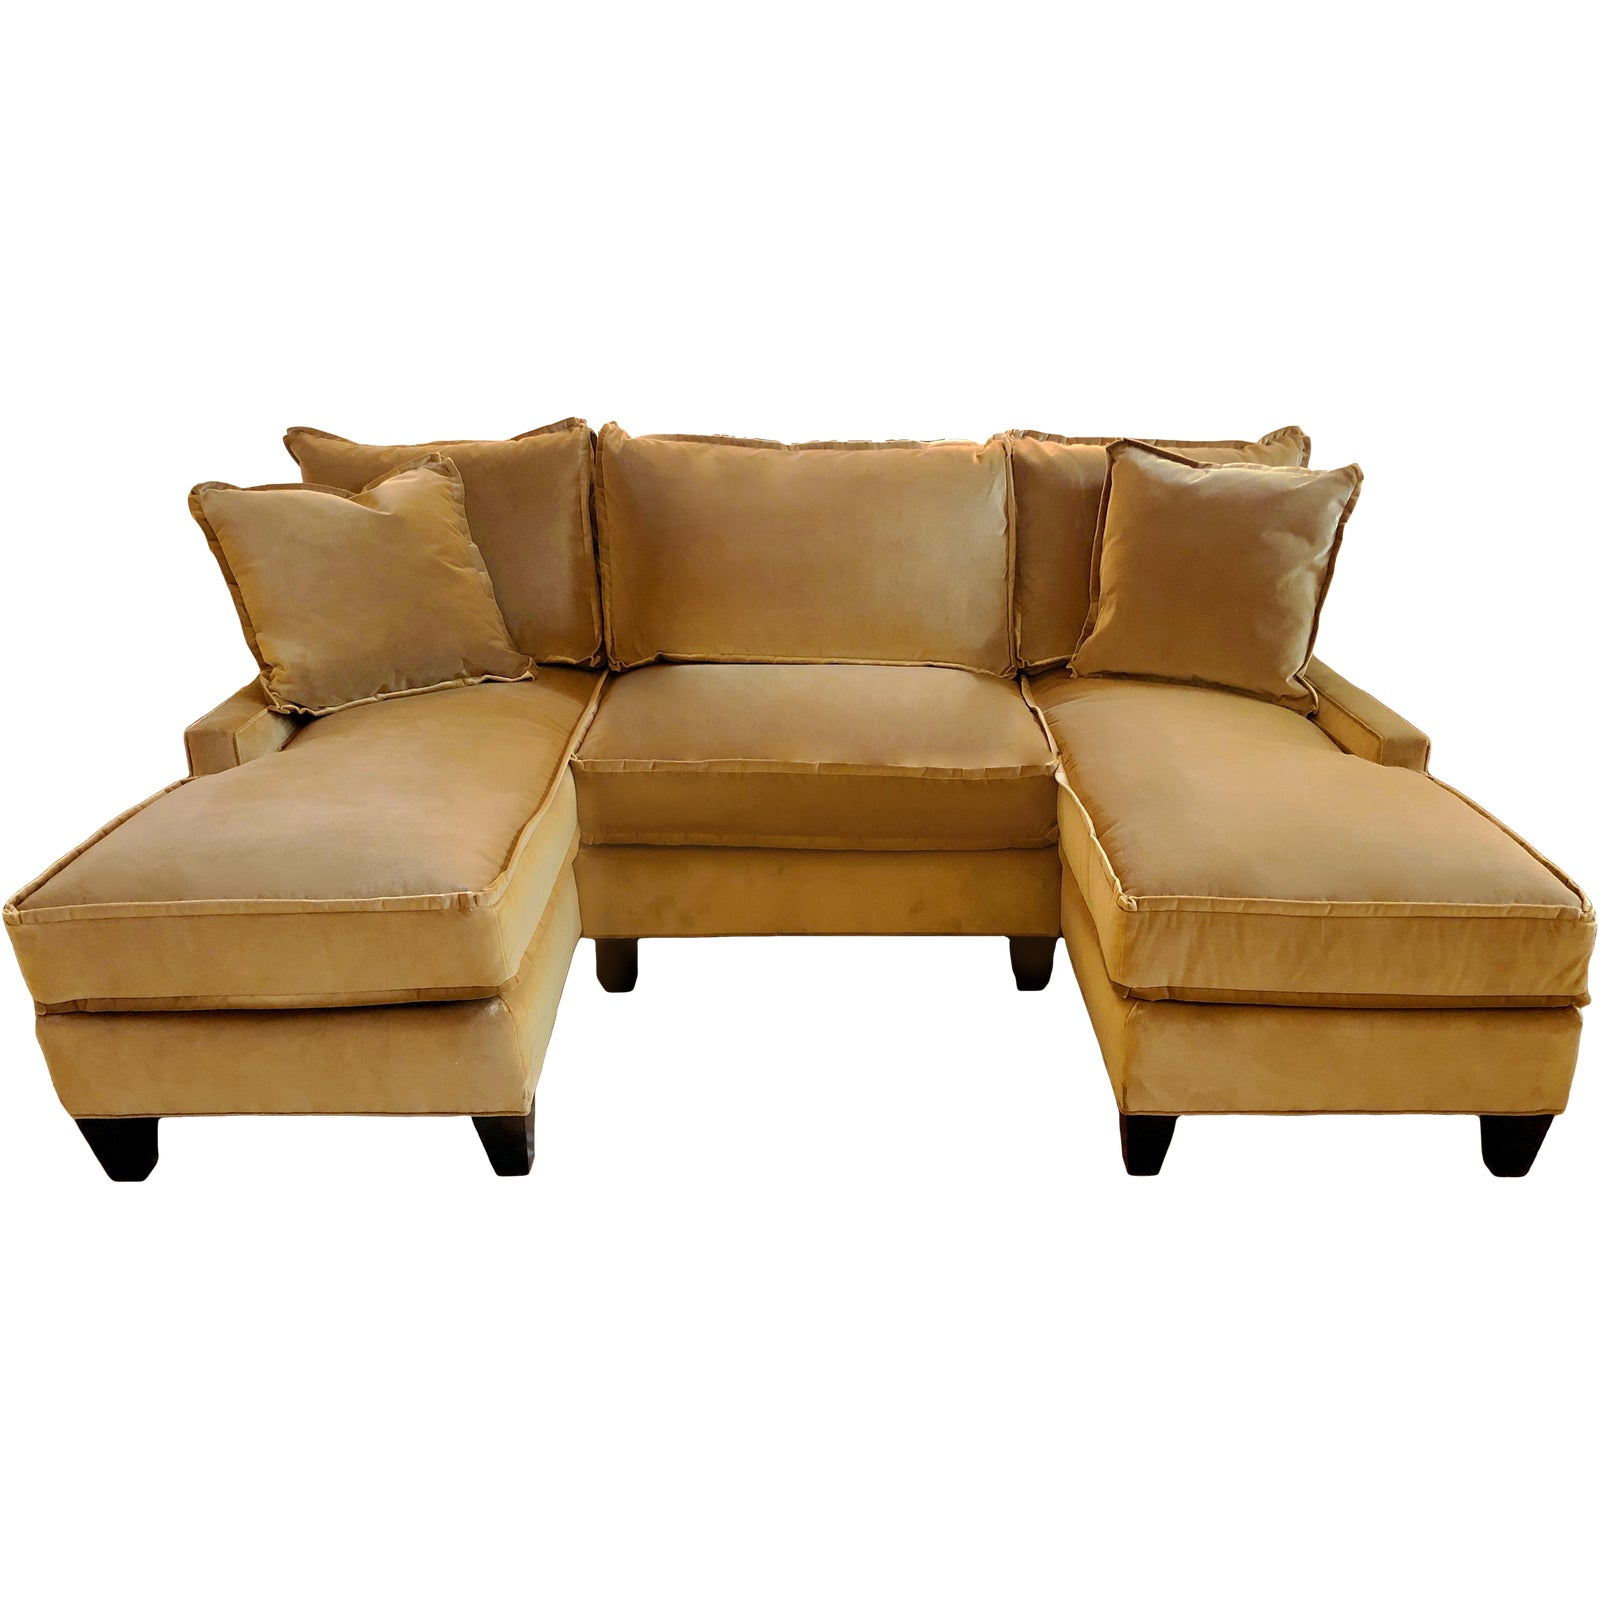 plush table double beige sectional sectionals fantastic leather with ergonomic designs chaise back and design